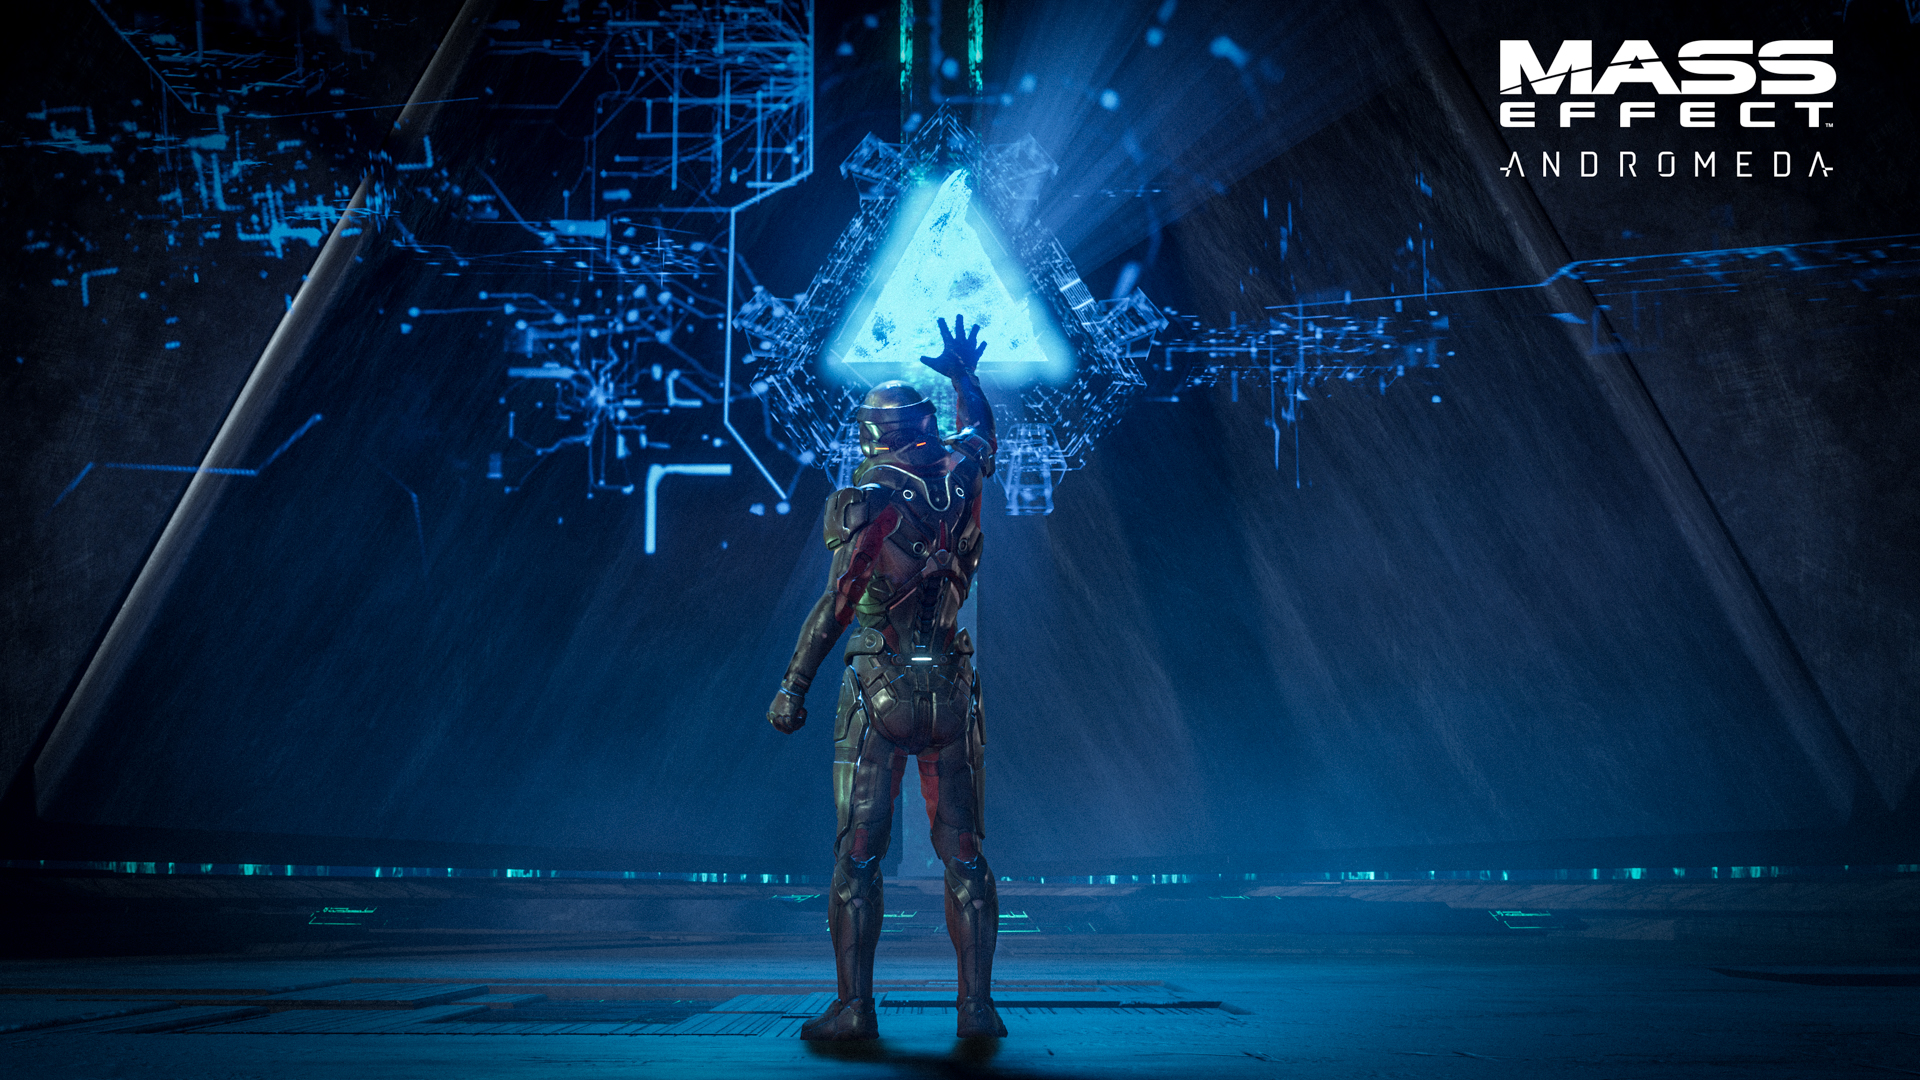 Mass Effect Andromeda 2019 Wallpapers Wallpaper Cave